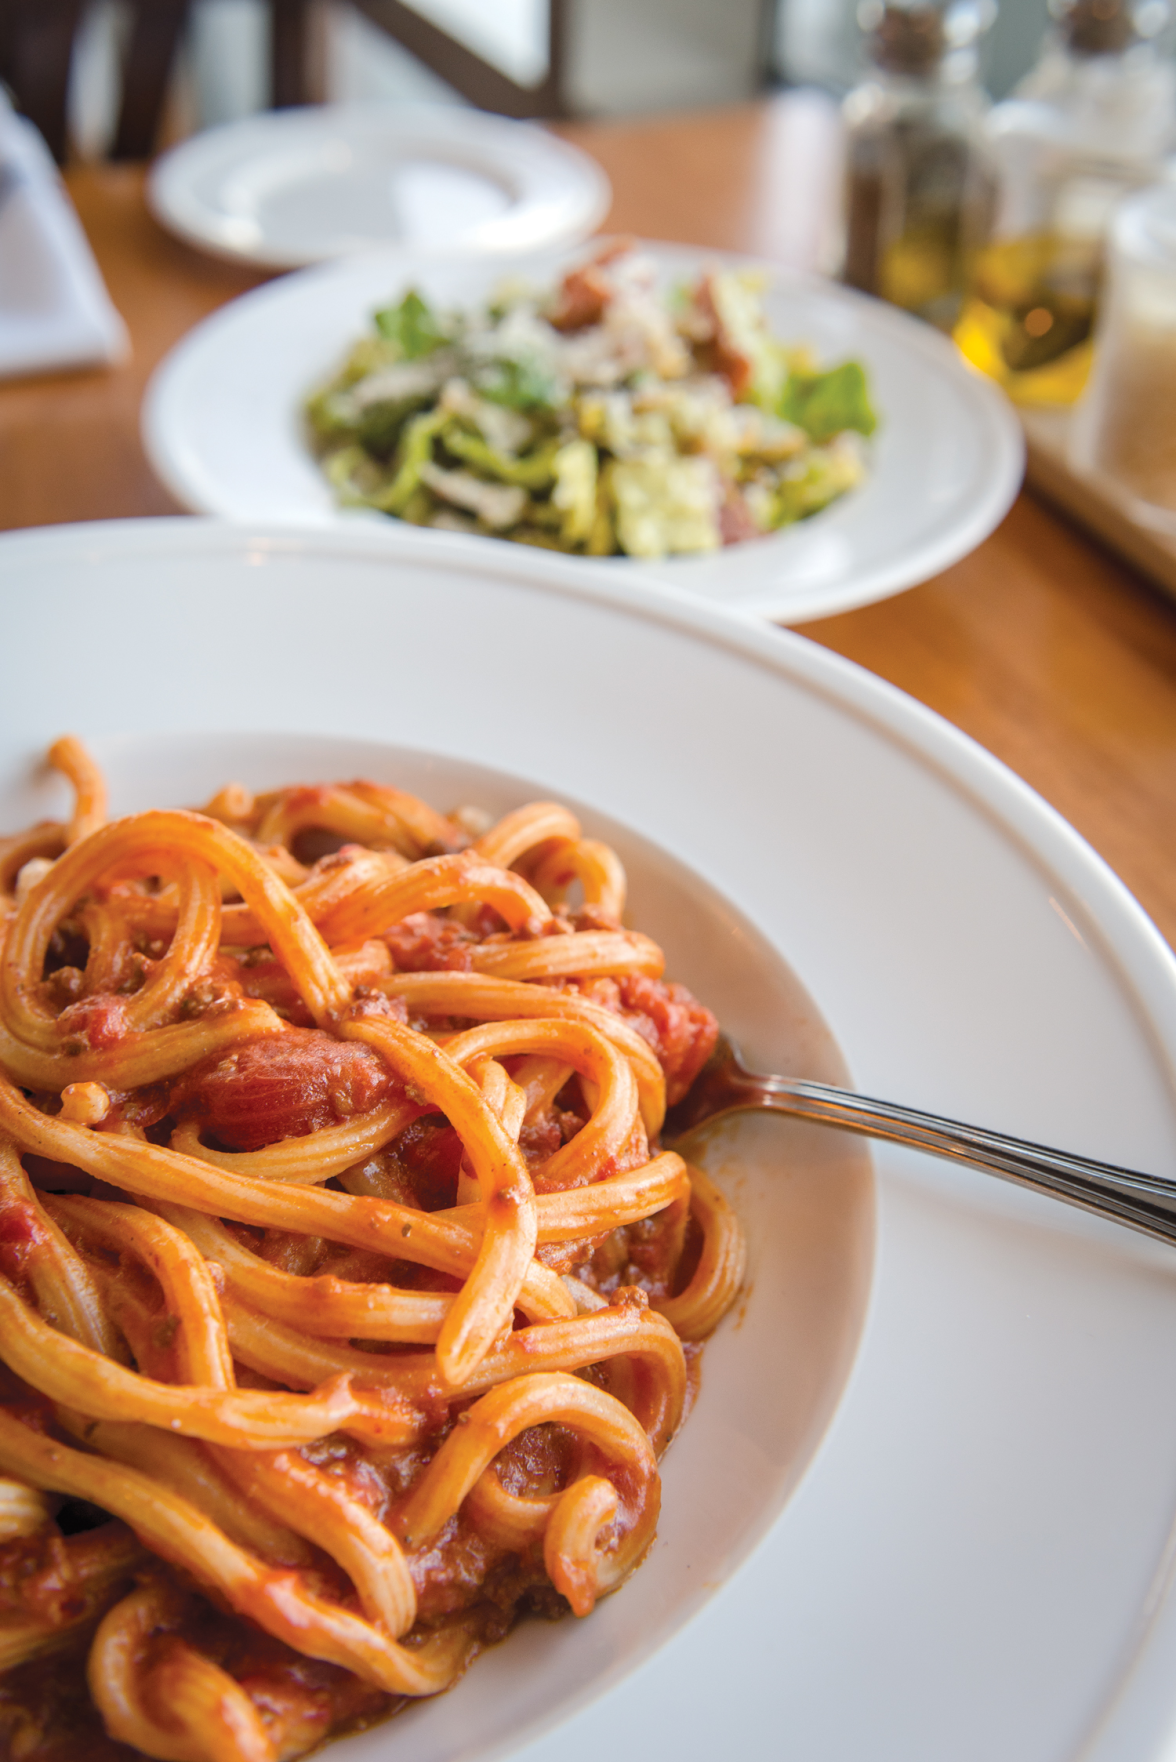 Pastaria's Food Satisfies, Even if the Execution Is Wanting